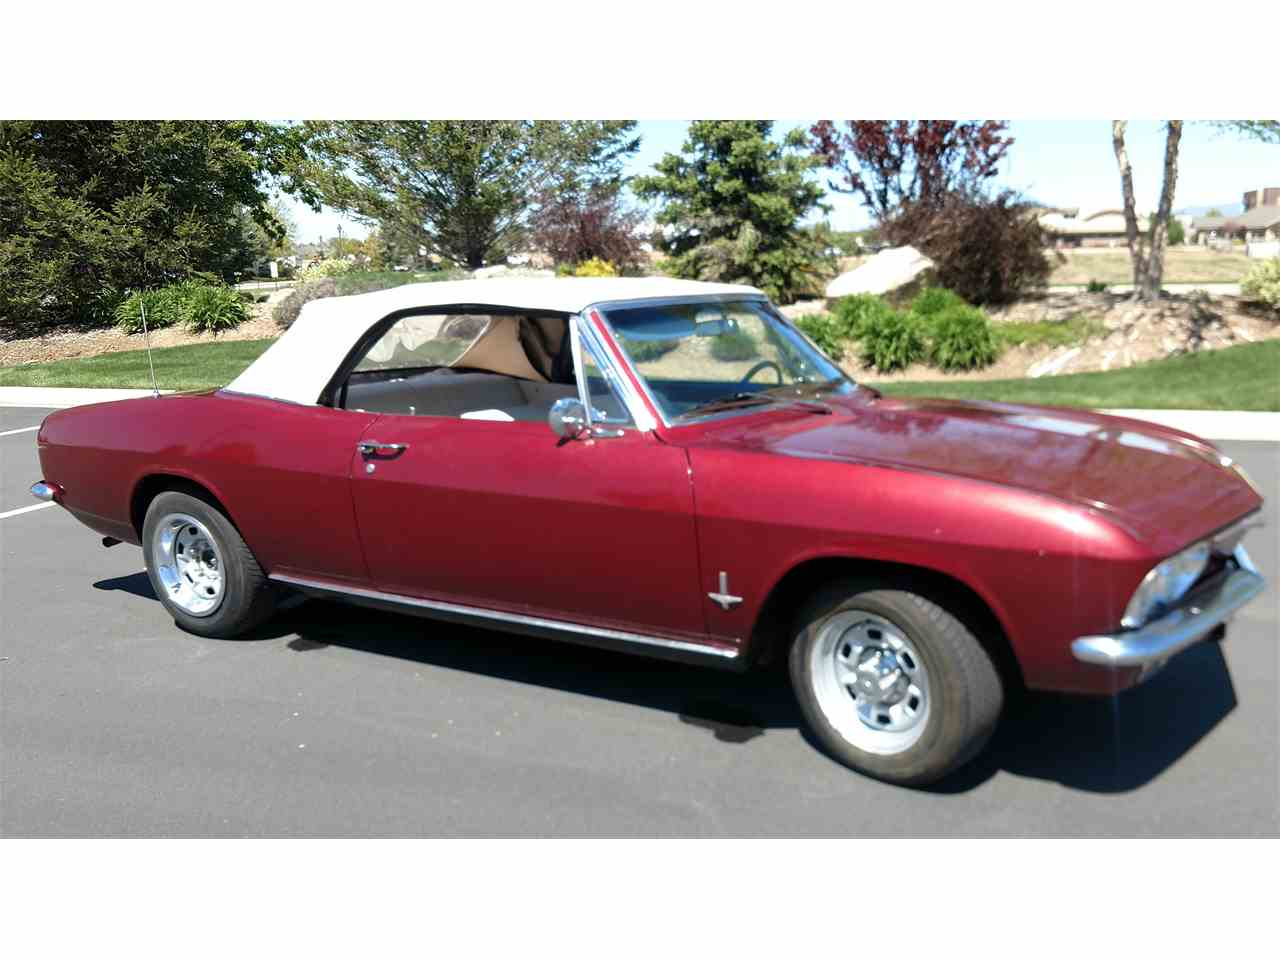 All Chevy chevy corvair monza : 1965 to 1967 Chevrolet Corvair Monza for Sale on ClassicCars.com